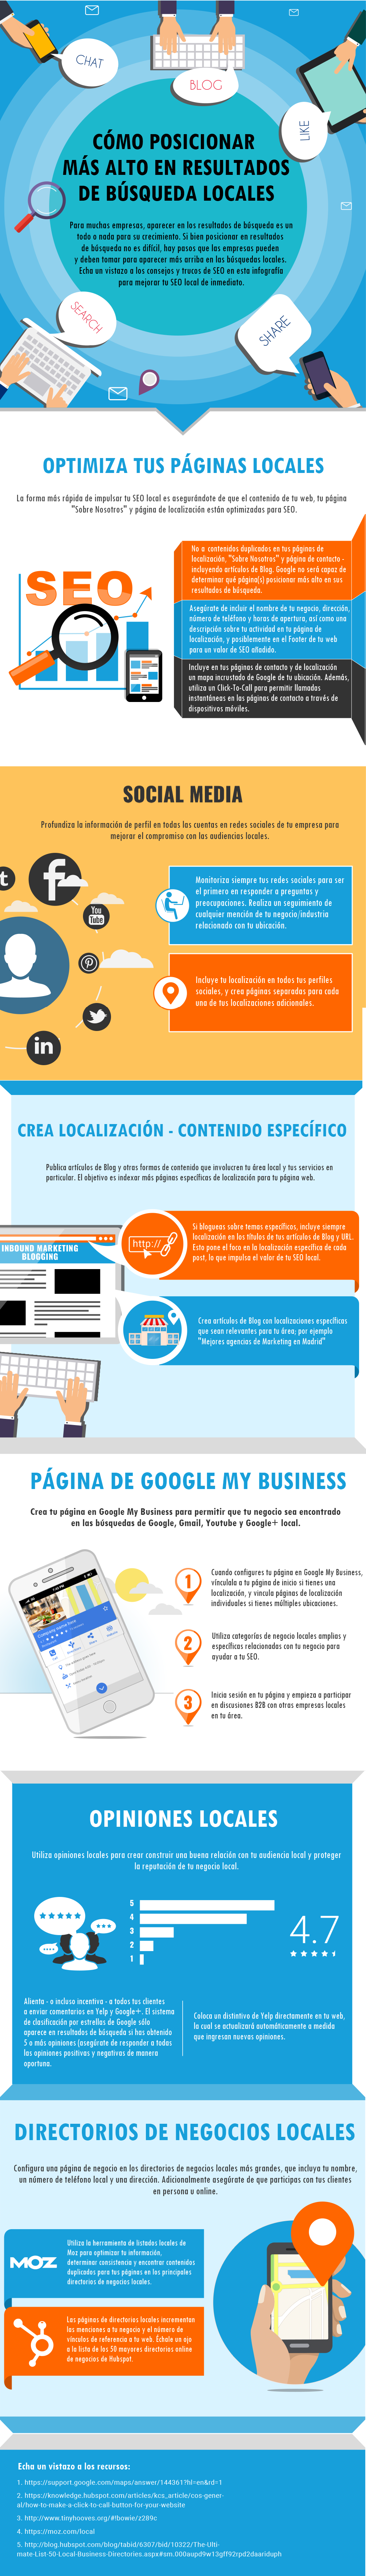 Infografia-optimizacion-SEO-local.png